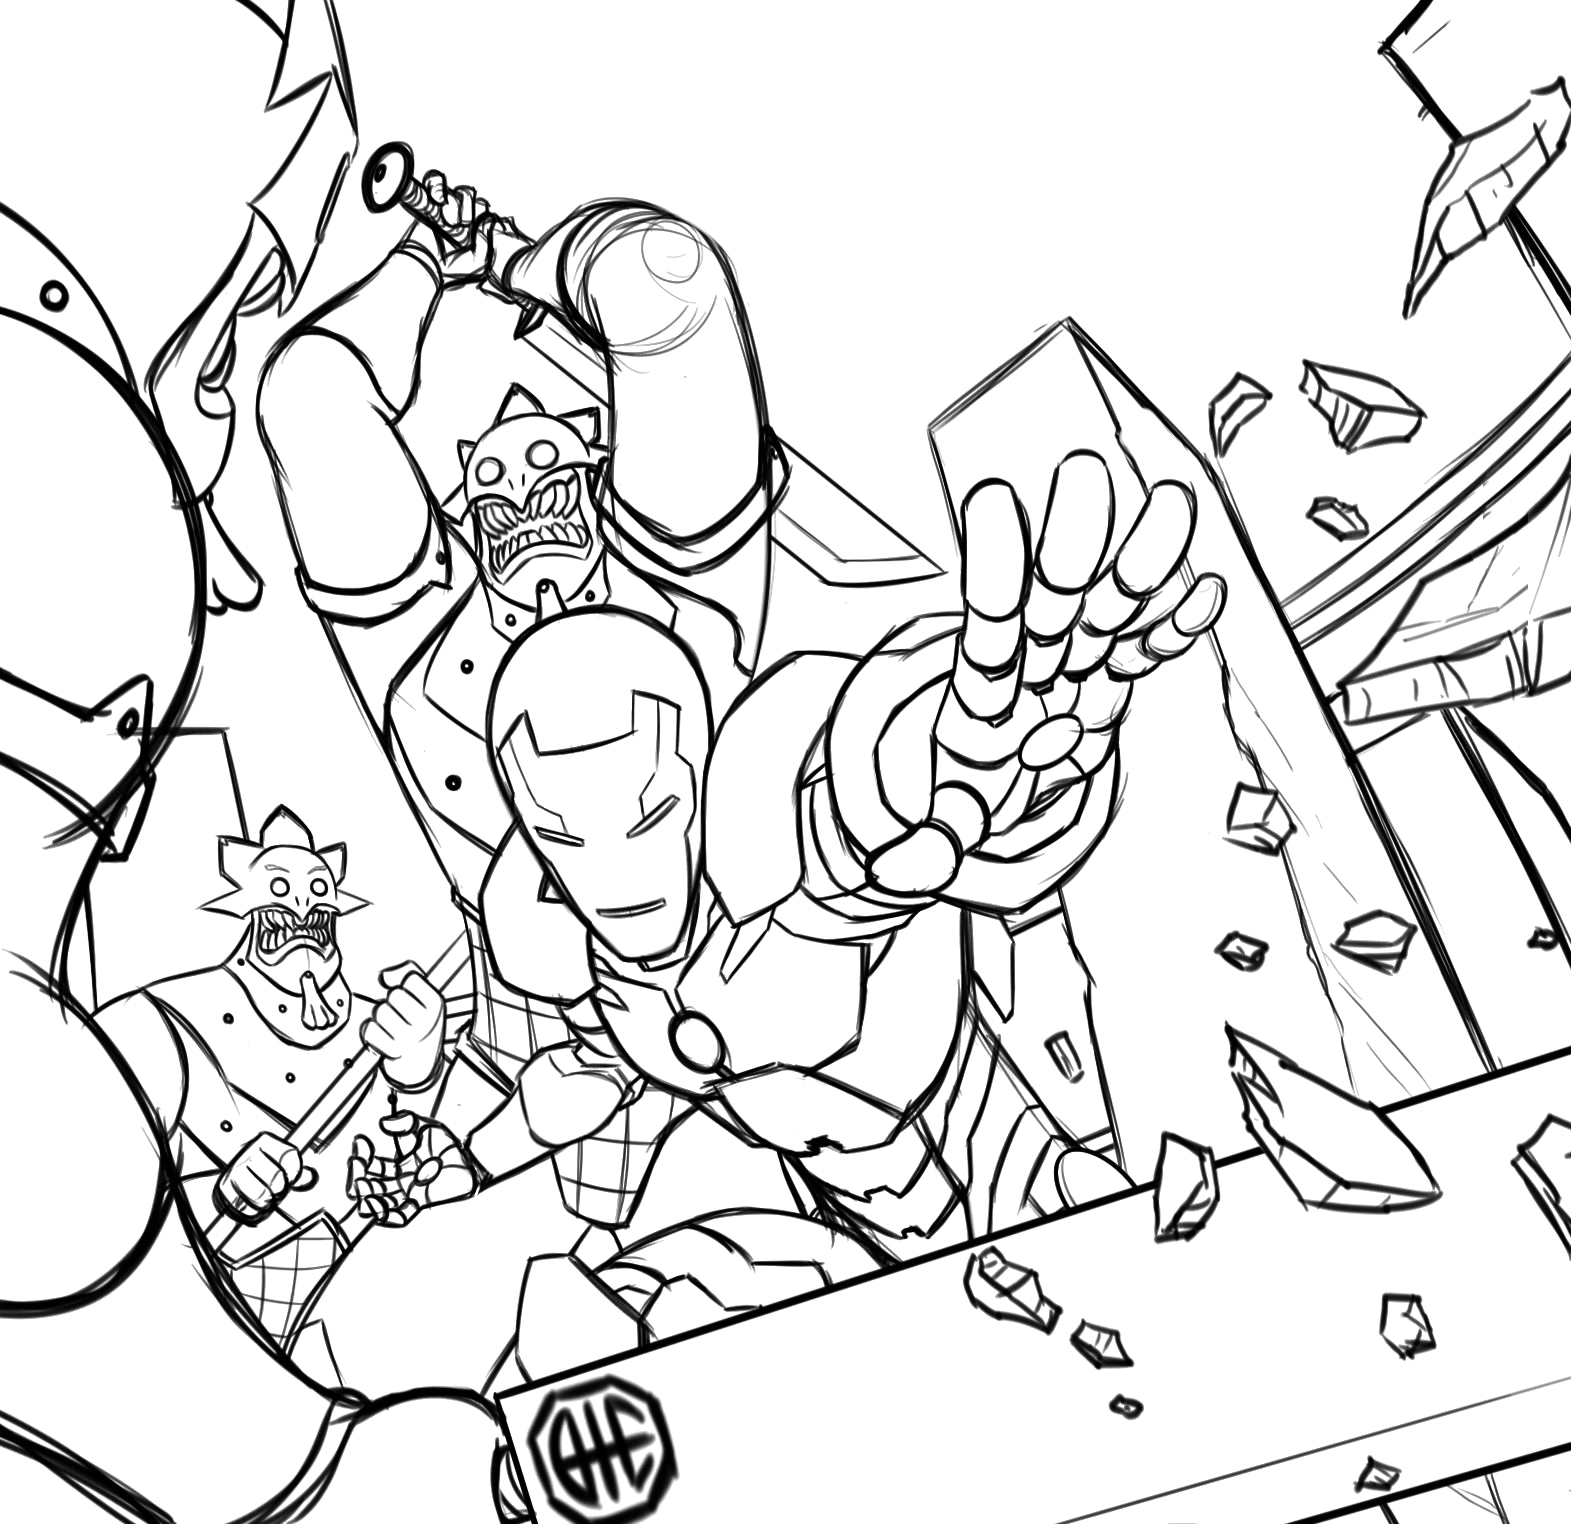 avengers iron man coloring pages free printable avengers iron man coloring pages coloring avengers iron man pages